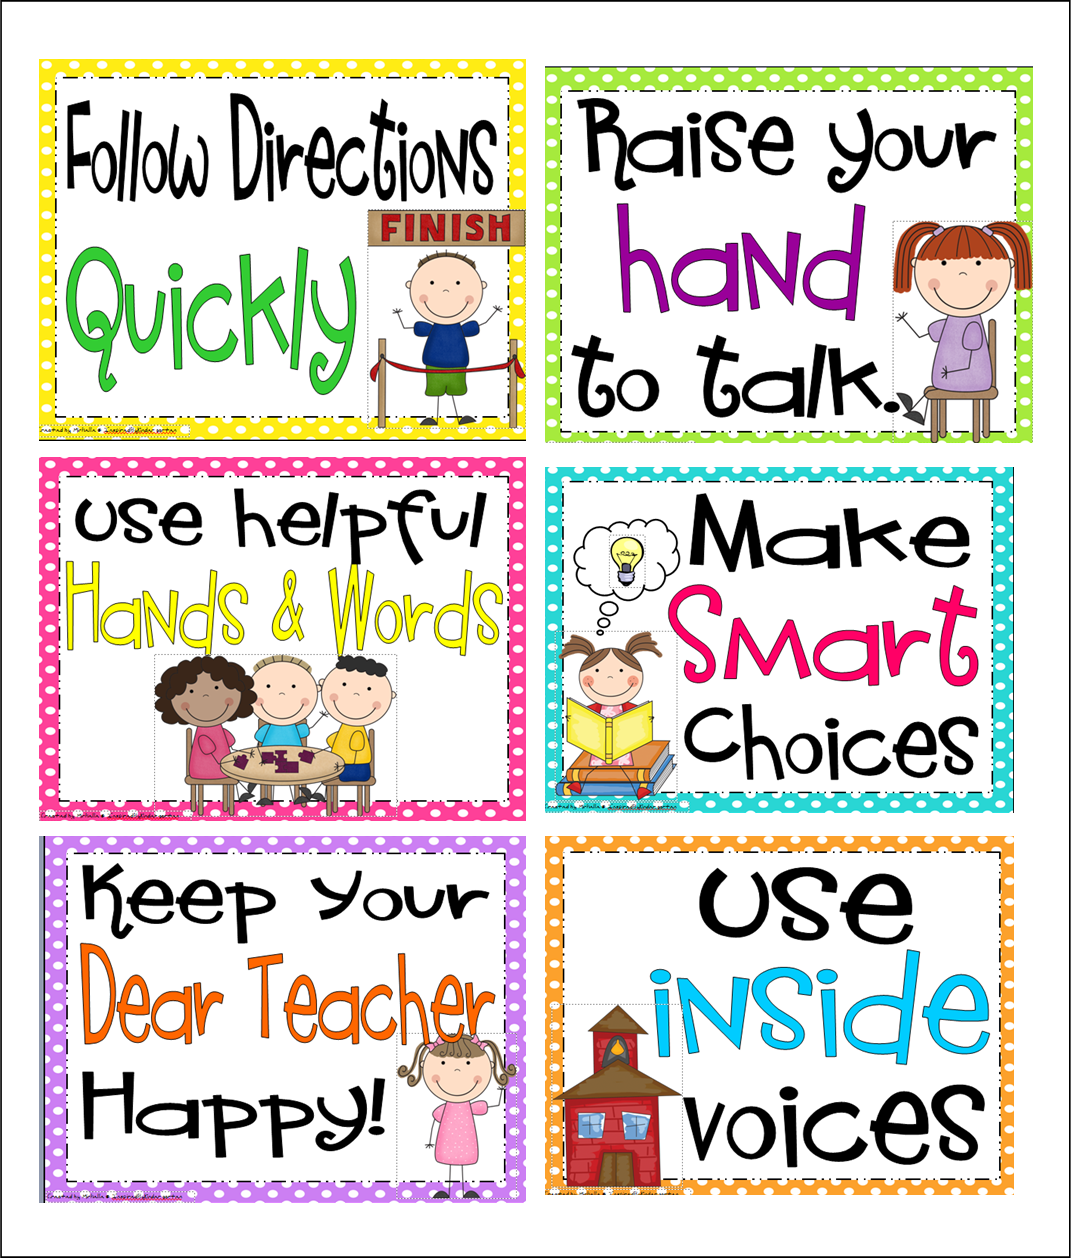 Inspired By Kindergarten Behavior Charts S What I M Going To Try Freebie Pack Has The